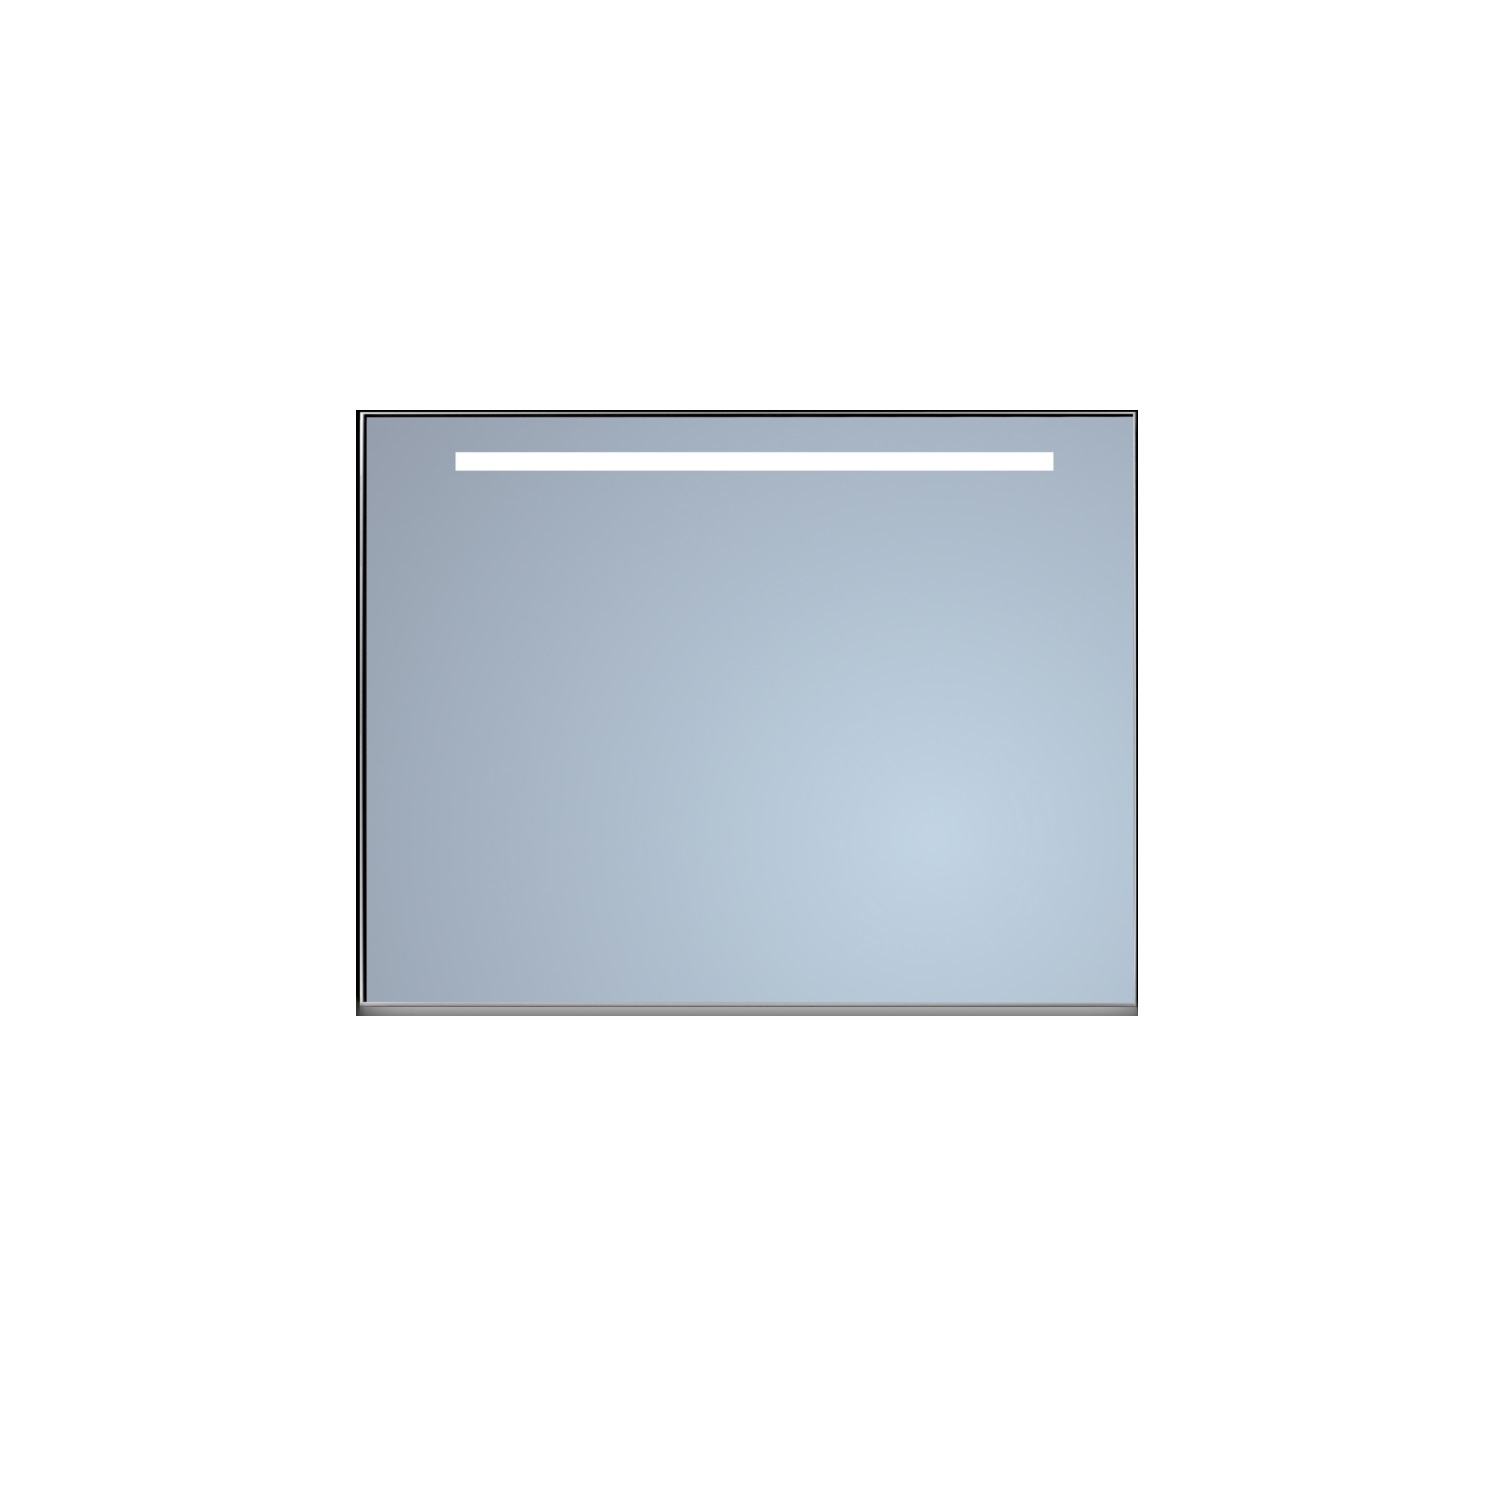 Badkamerspiegel Sanicare Q-Mirrors Ambiance en 'Cold White' LED-verlichting 70x60x3,5 Chroom Omlijsting